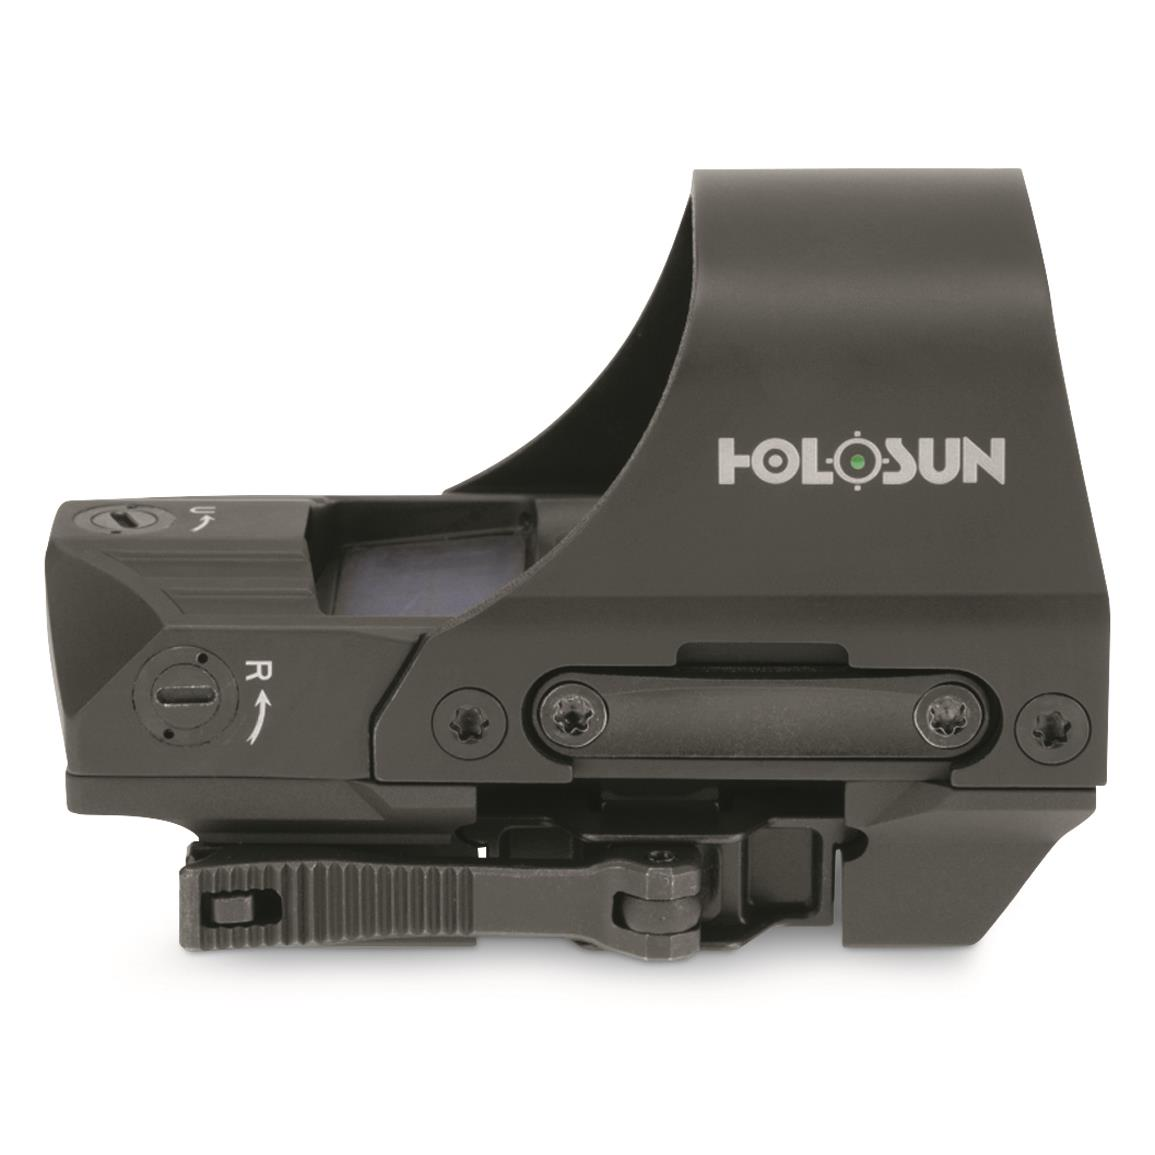 Holosun HE510C Elite Green LED Reflex Sight